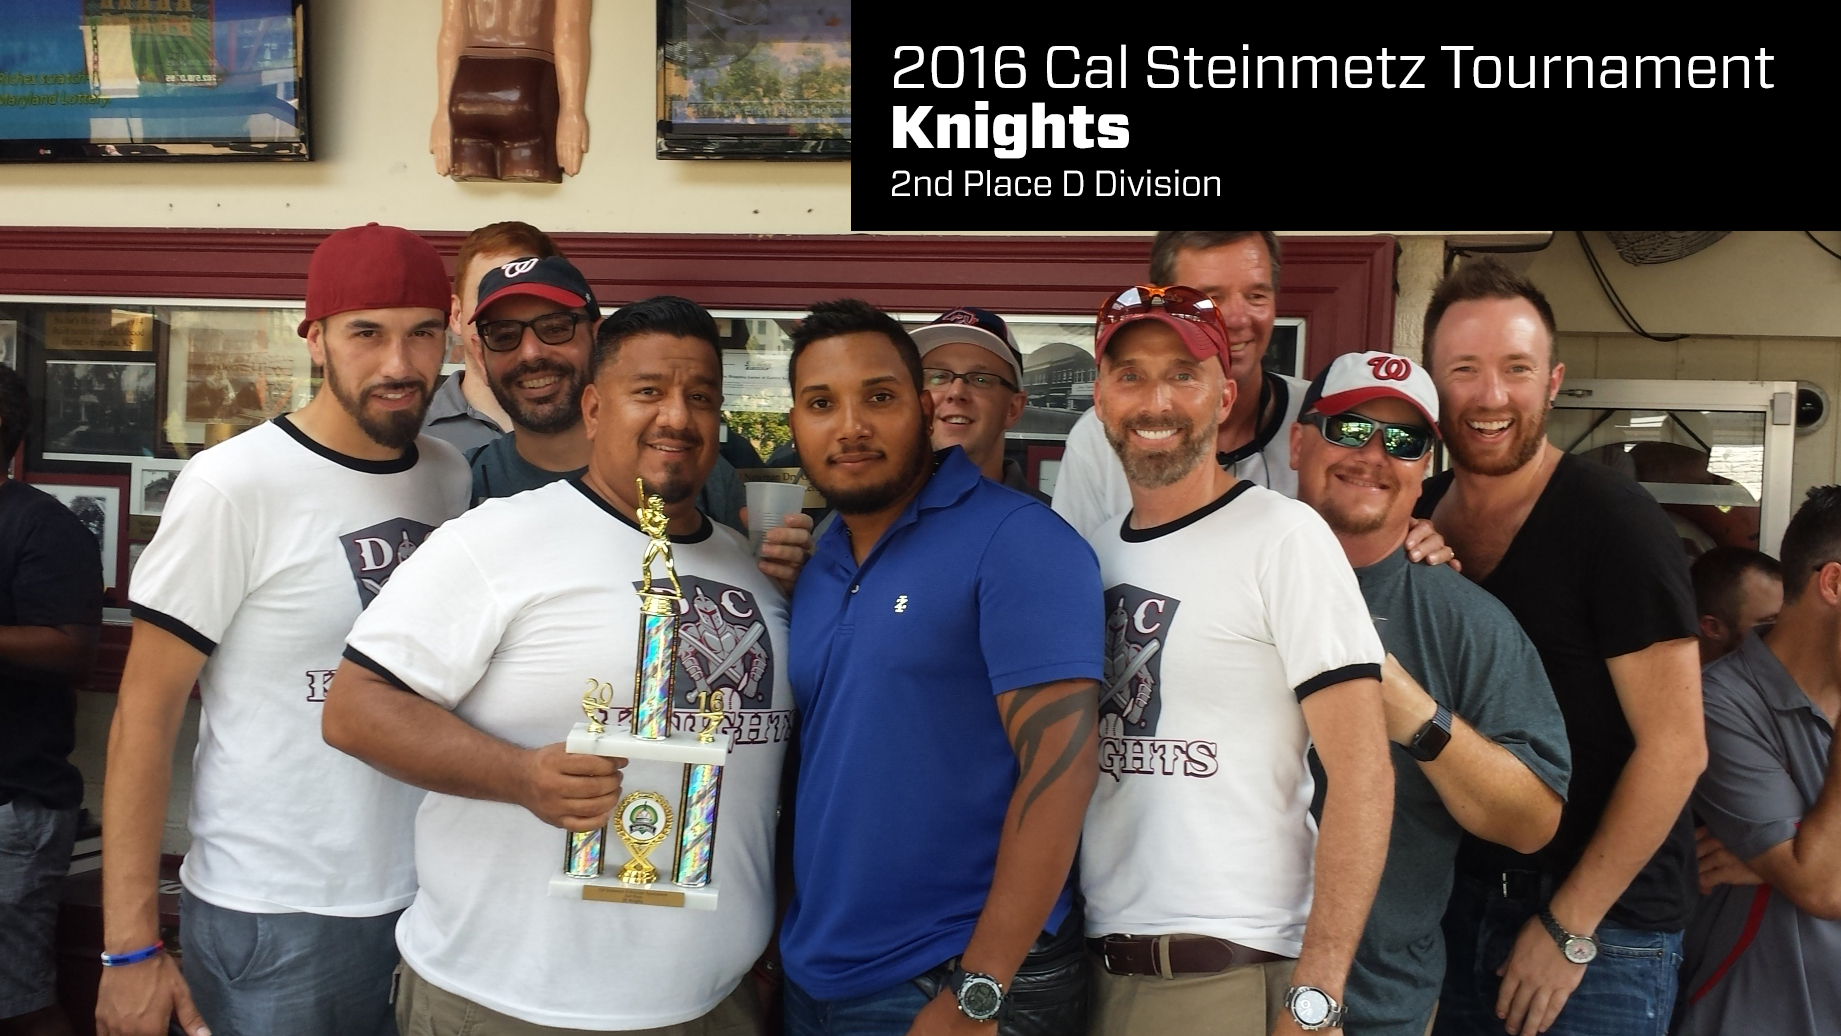 2016 Cal Steinmetz Tournament Winners